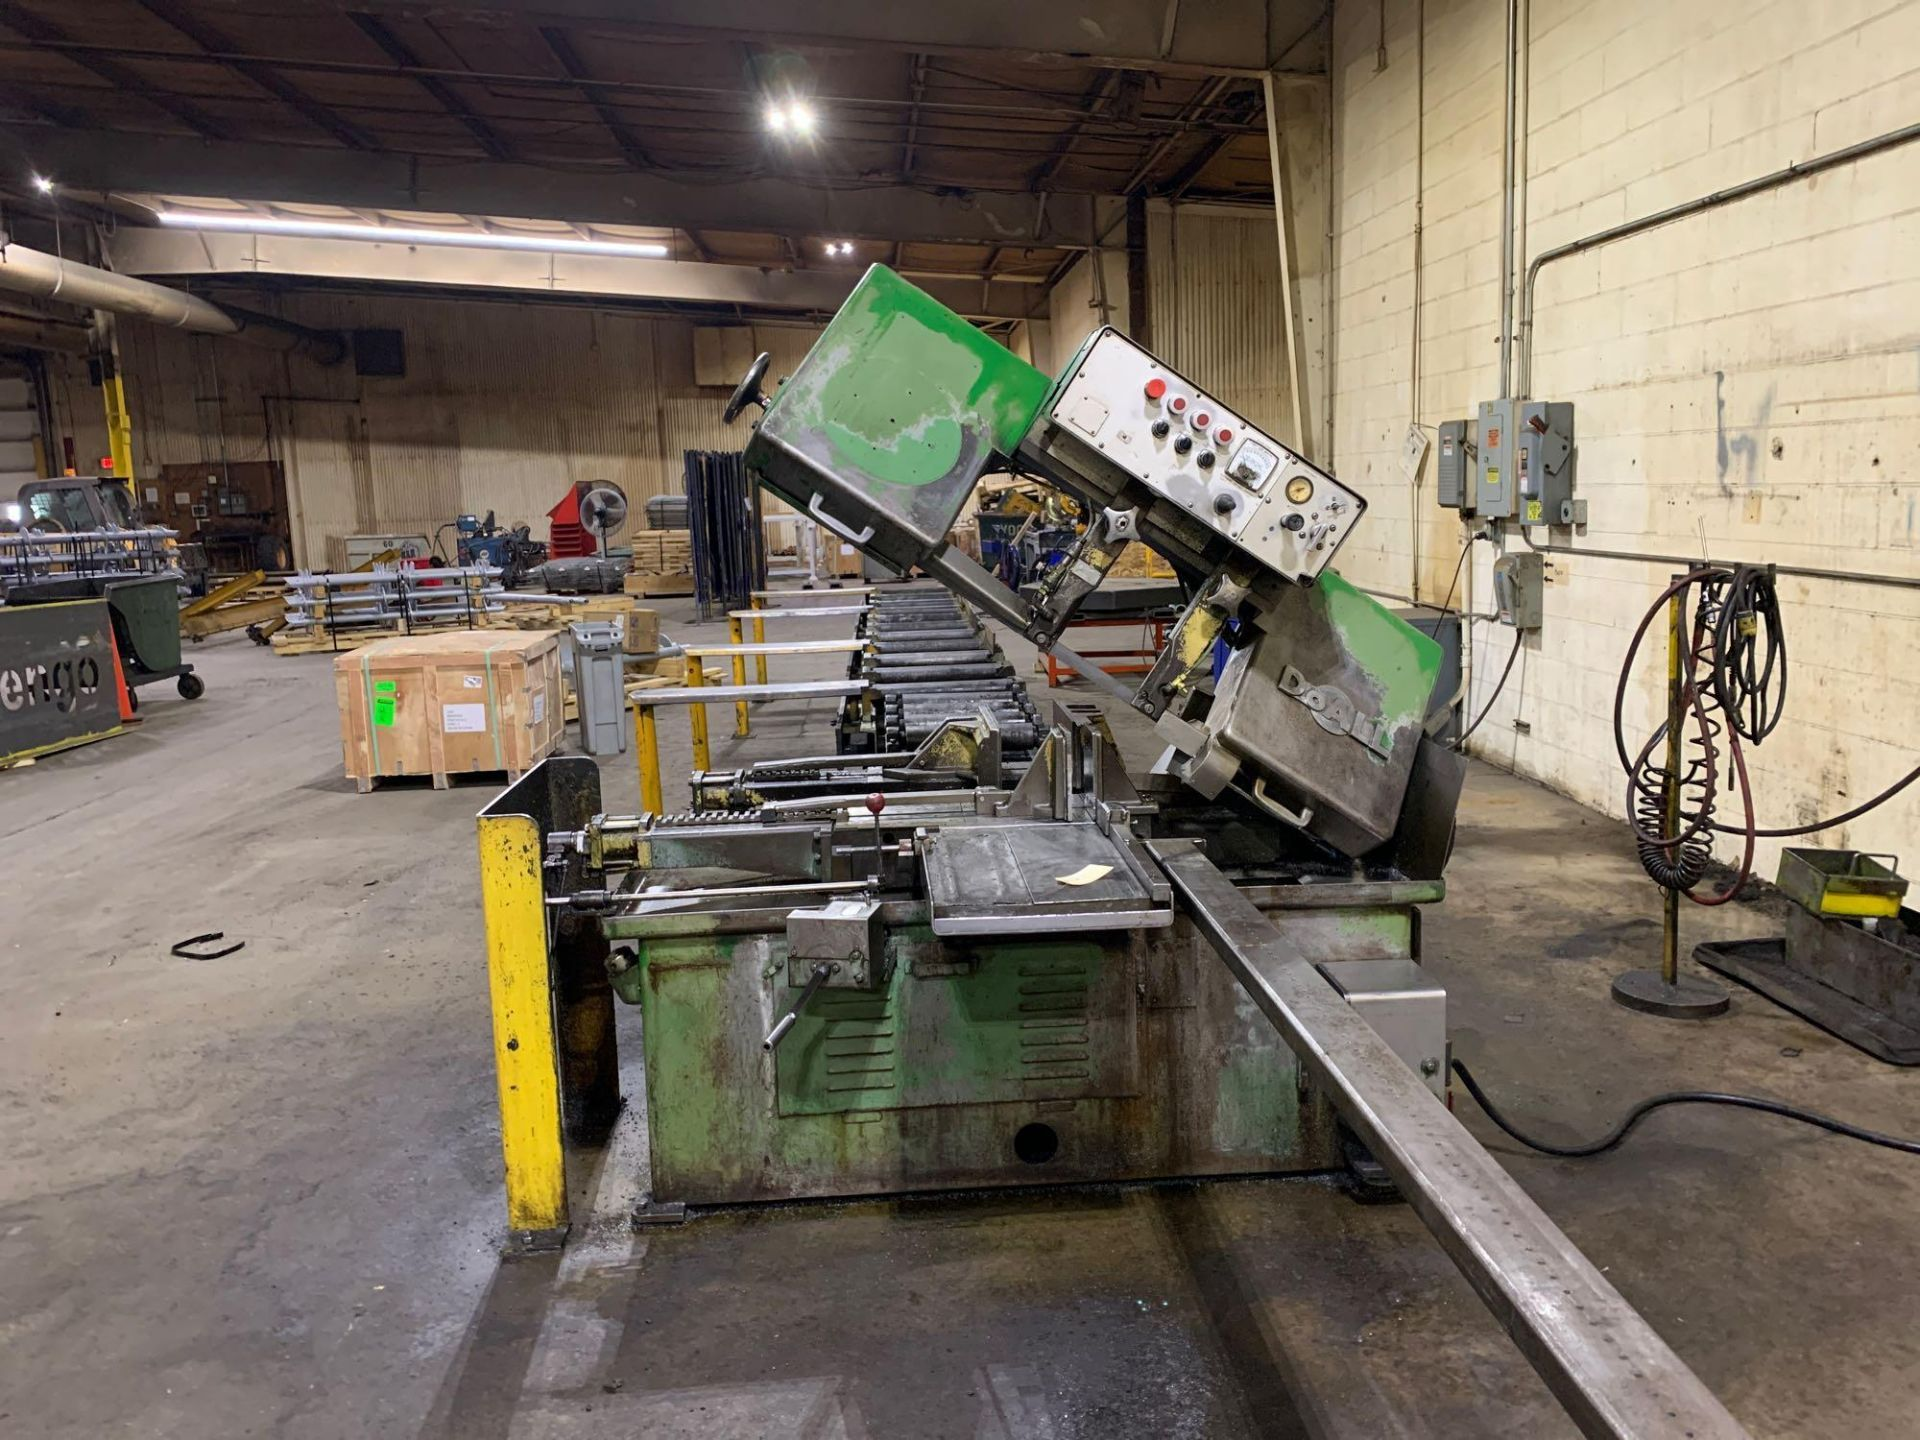 DoAllSemi-Automatic Horizontal Band Saw Model: C-1213a s/n: 412-84212 made in the usa capacity: rec - Image 2 of 16